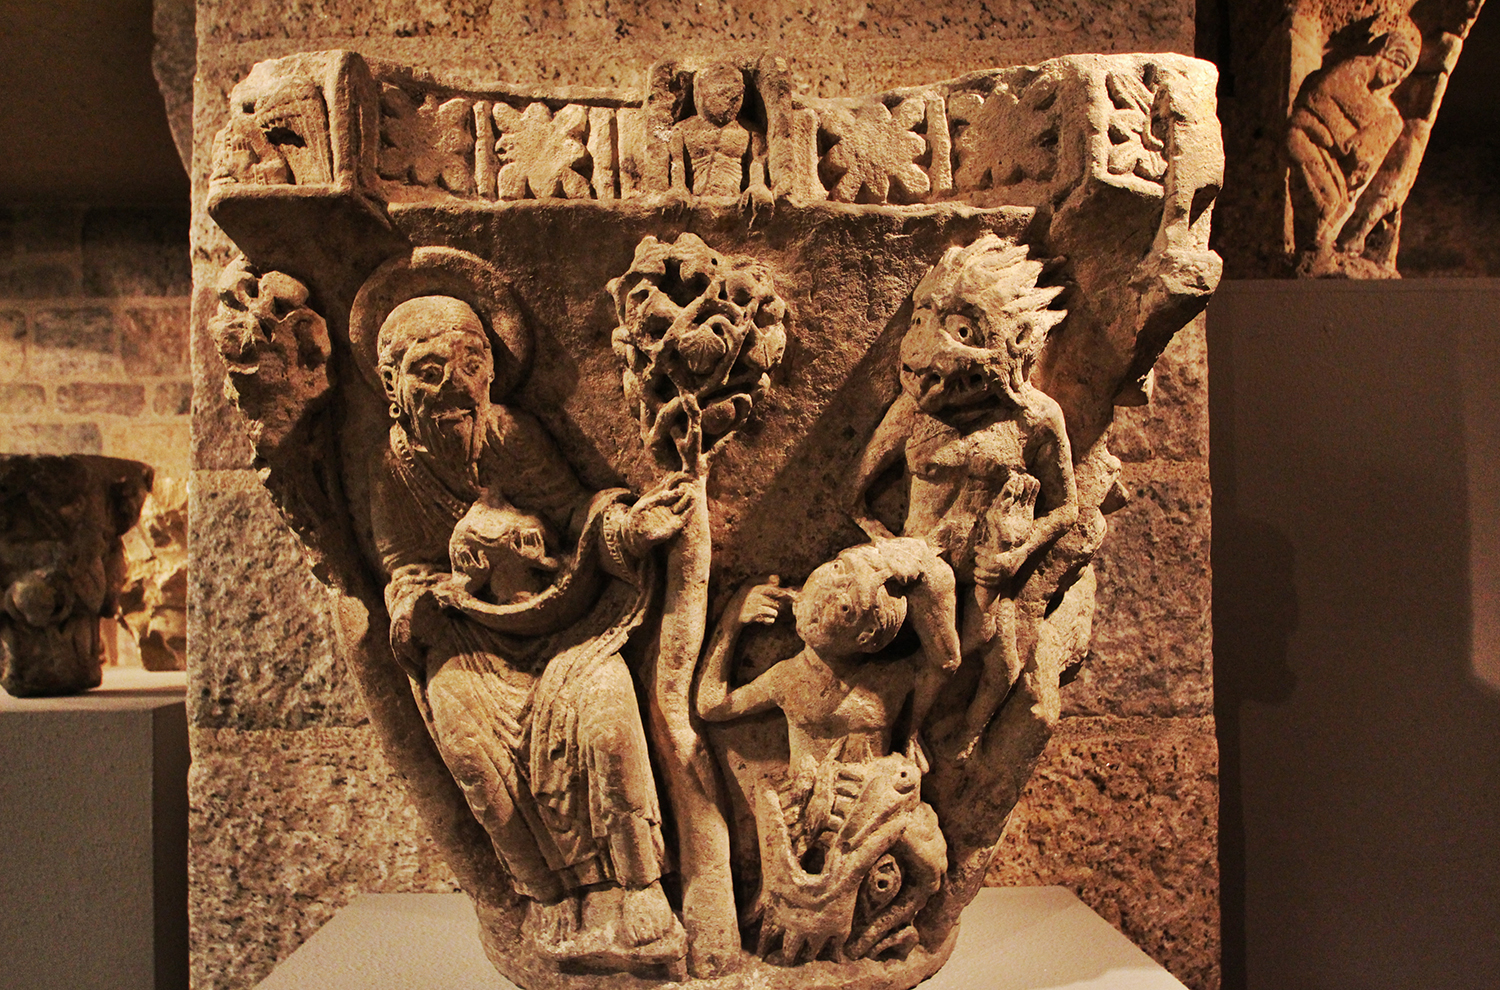 A 12-century capital in Glencairn's Medieval Gallery illustrates the biblical story of Lazarus and the rich man (09.jSP.94).